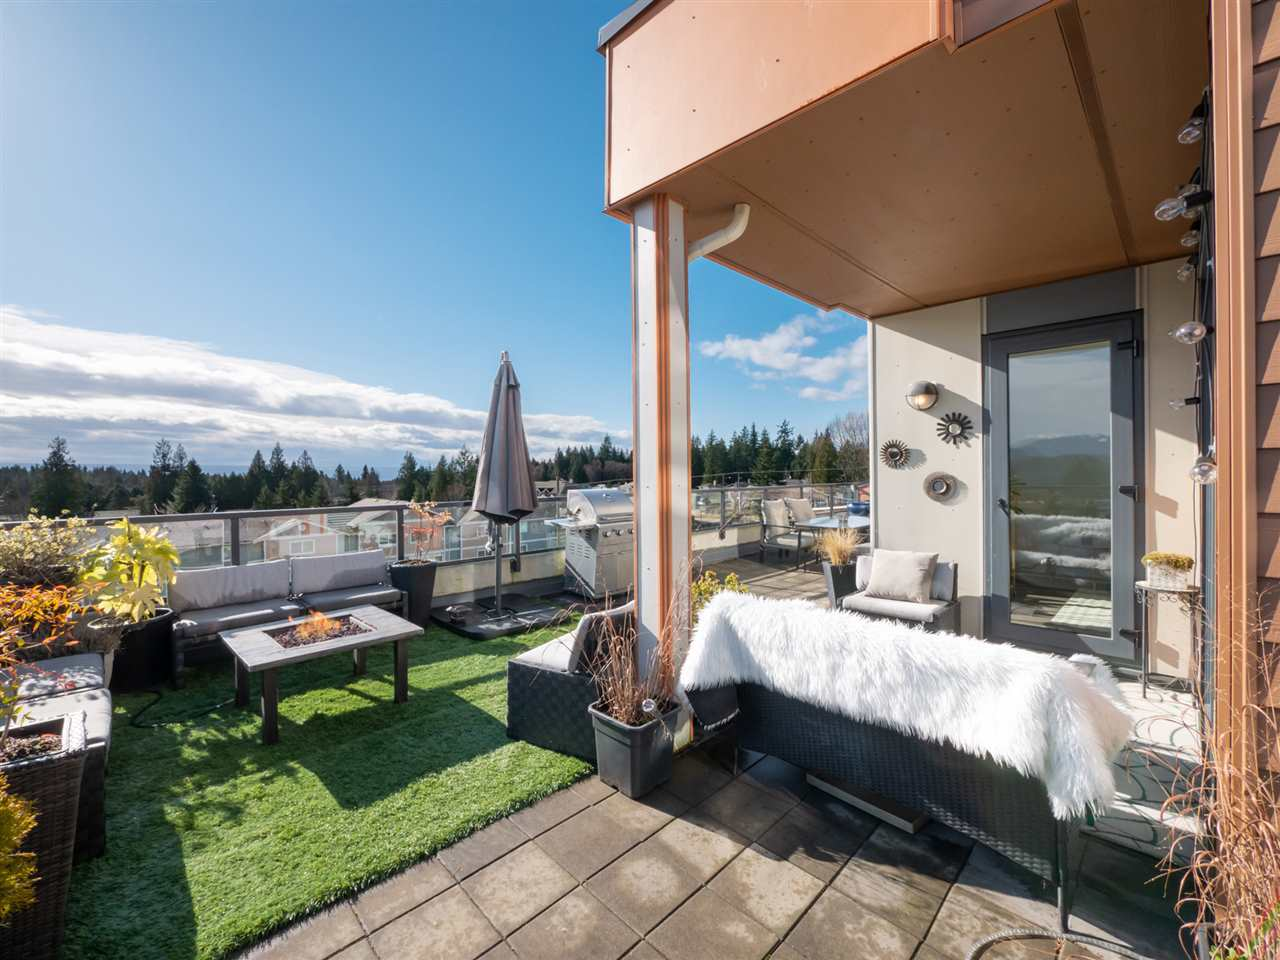 210 210 875 GIBSONS WAY - Gibsons & Area Apartment/Condo for sale, 2 Bedrooms (R2542139) - #28